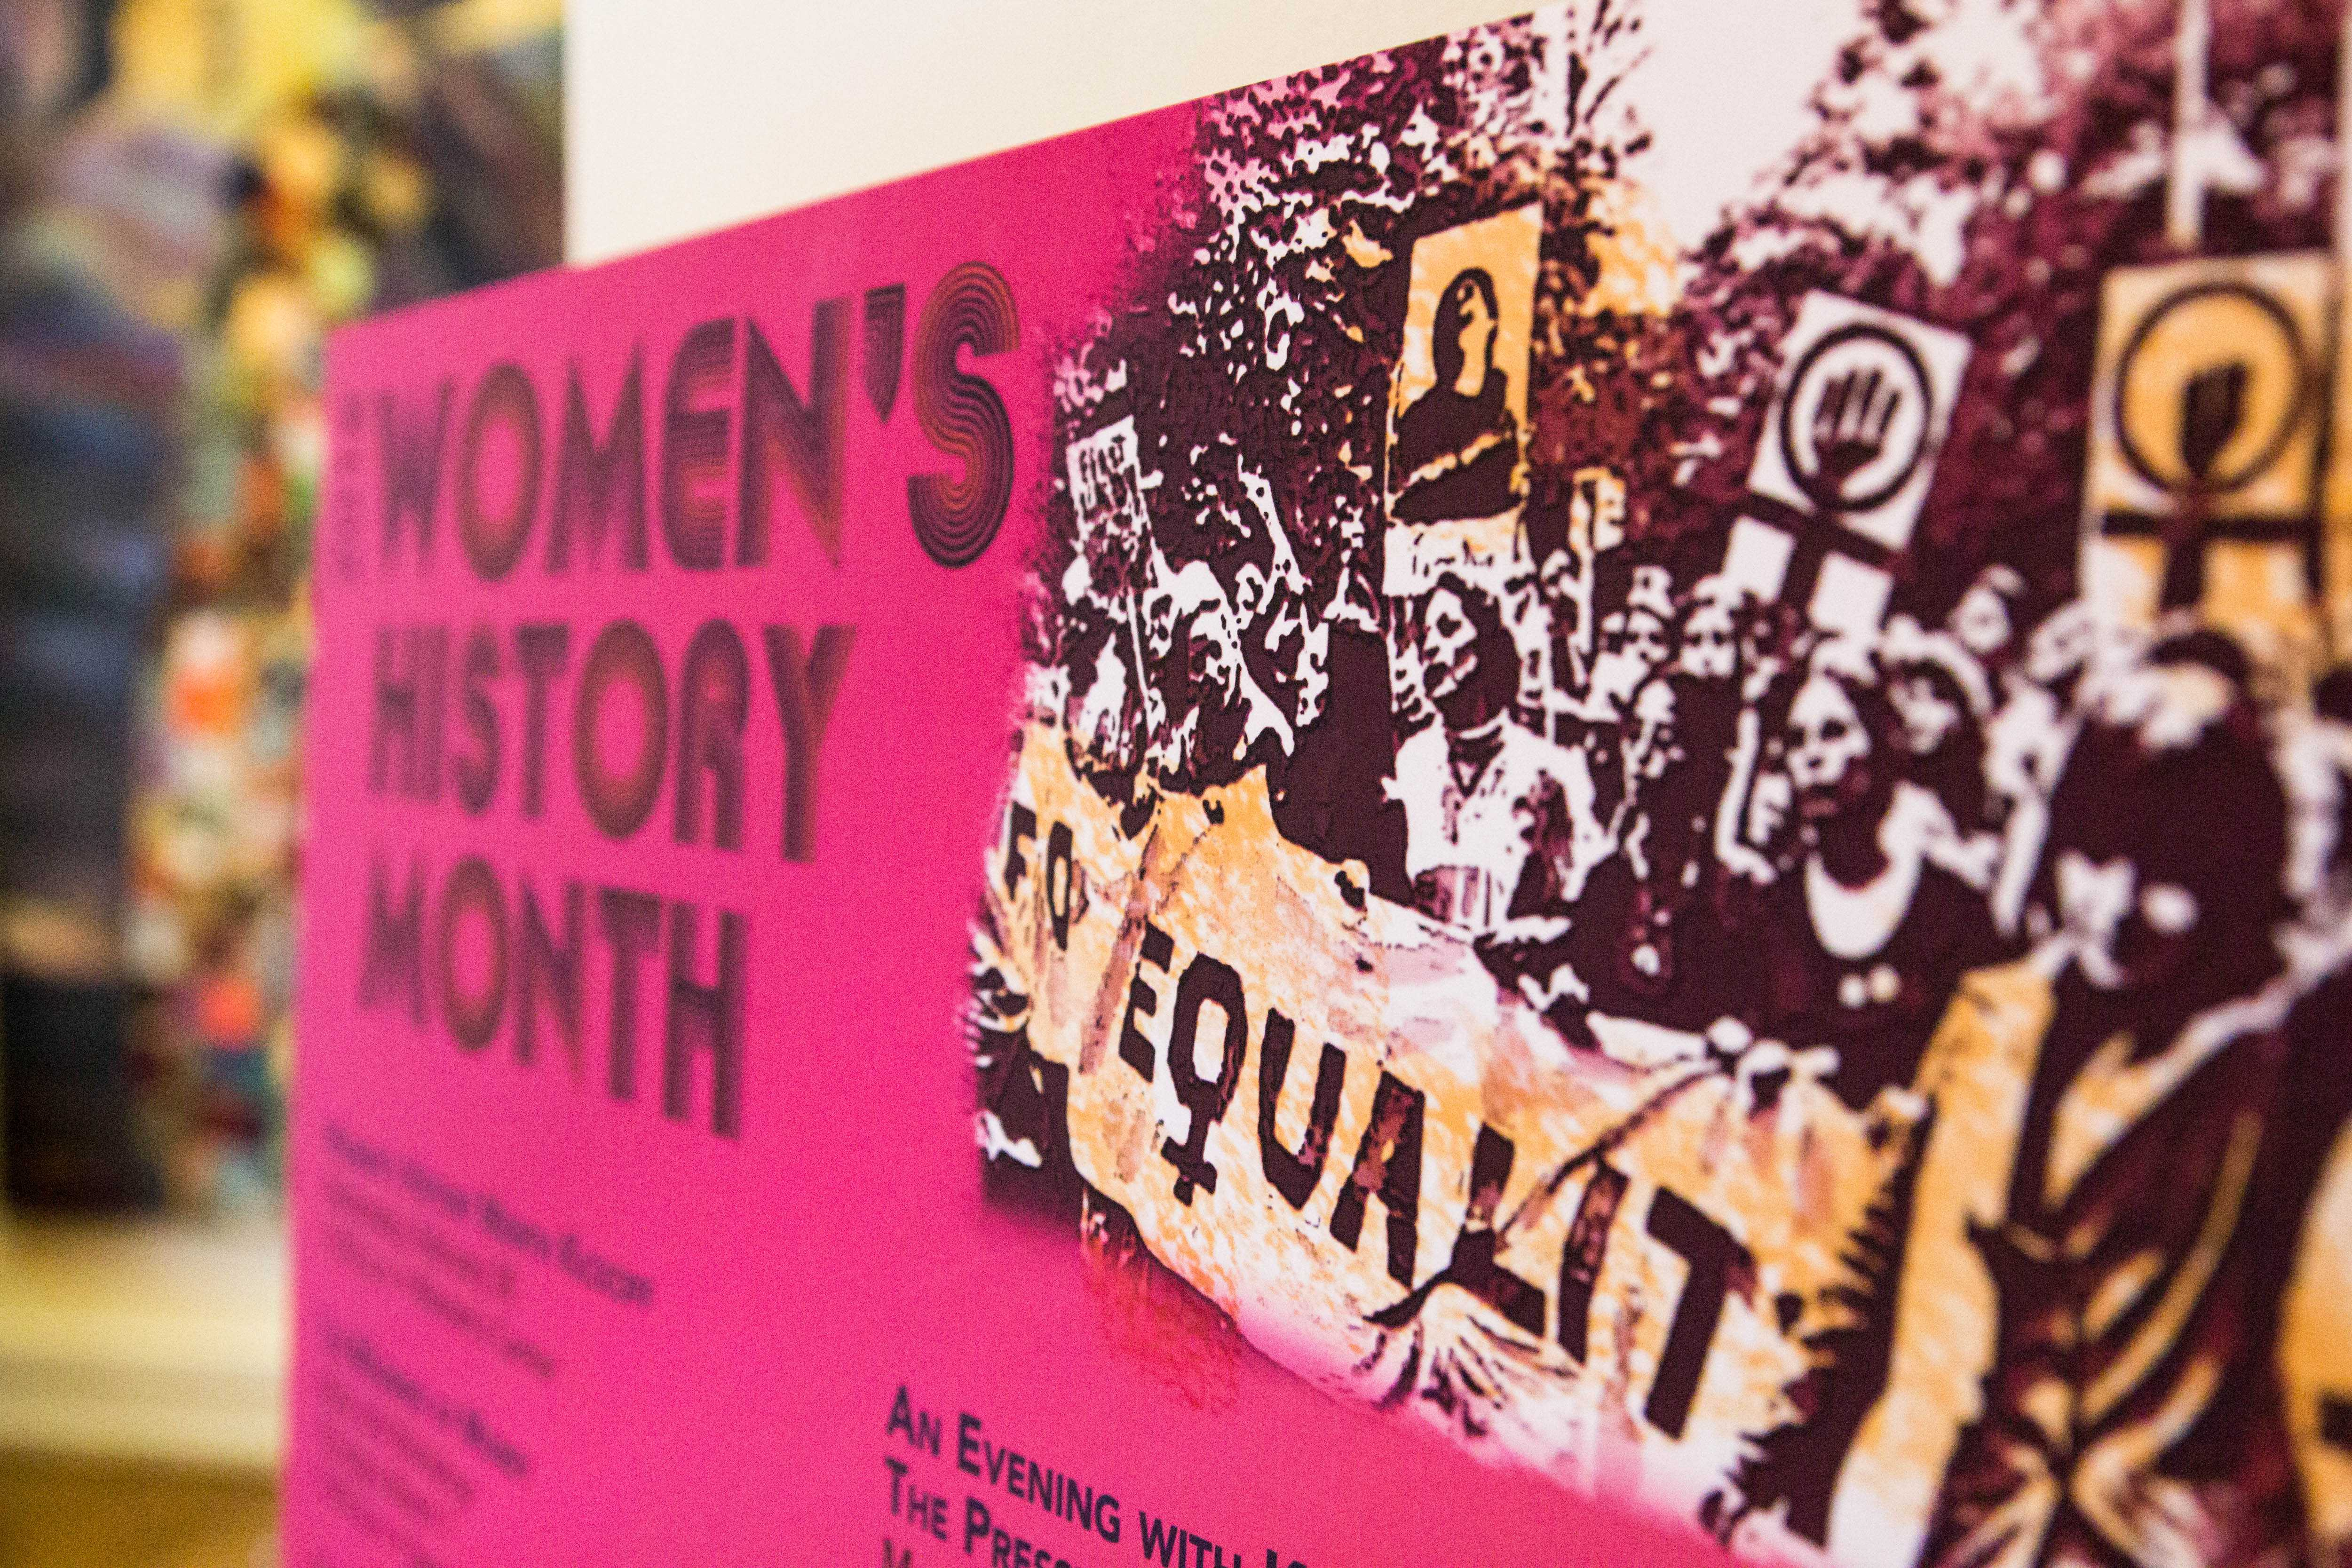 The Margaret Cuninggim Women's Center hosts the Women's History Month Kickoff on Wednesday, February 28, 2018. The kickoff discussed the schedule for upcoming events and featured food, music, and raffles. (Photo by Emily Gonçalves)